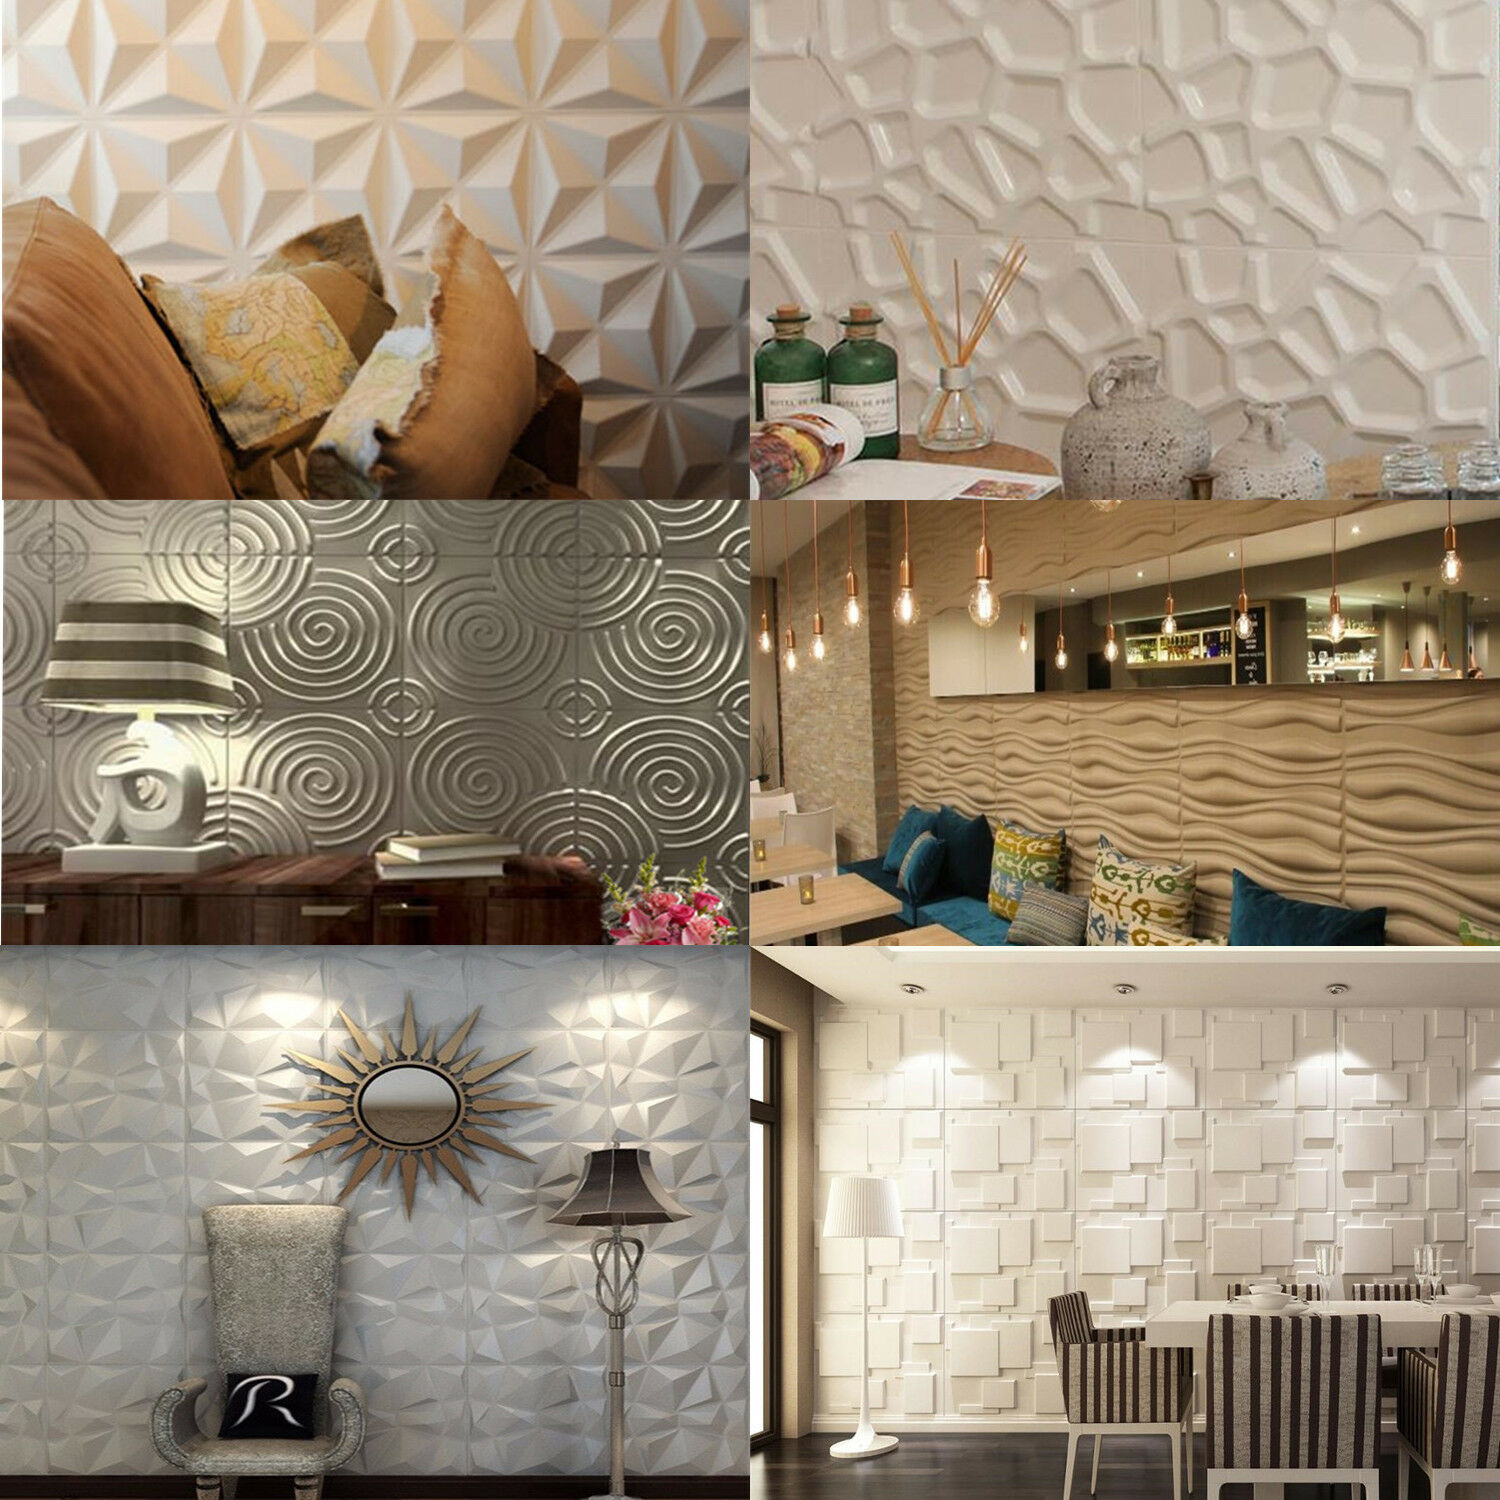 NEW PVC 3D Wall panel Decorative Wall Ceiling Tiles Cladding Wallpaper NO BAMBOO